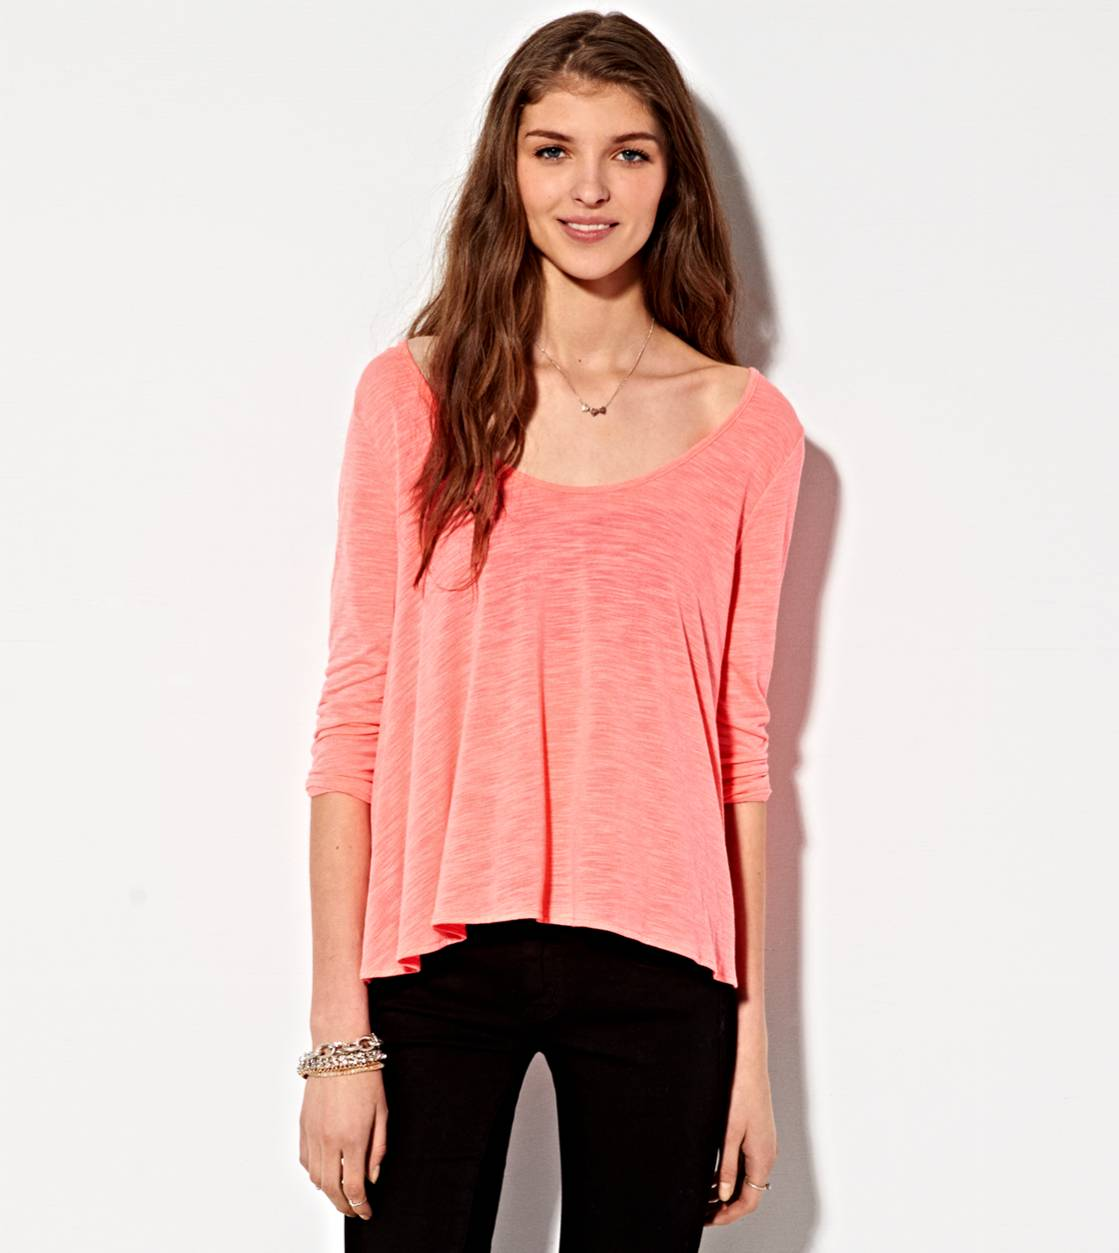 Coral Burst AE Flowy Cross Back Shirt